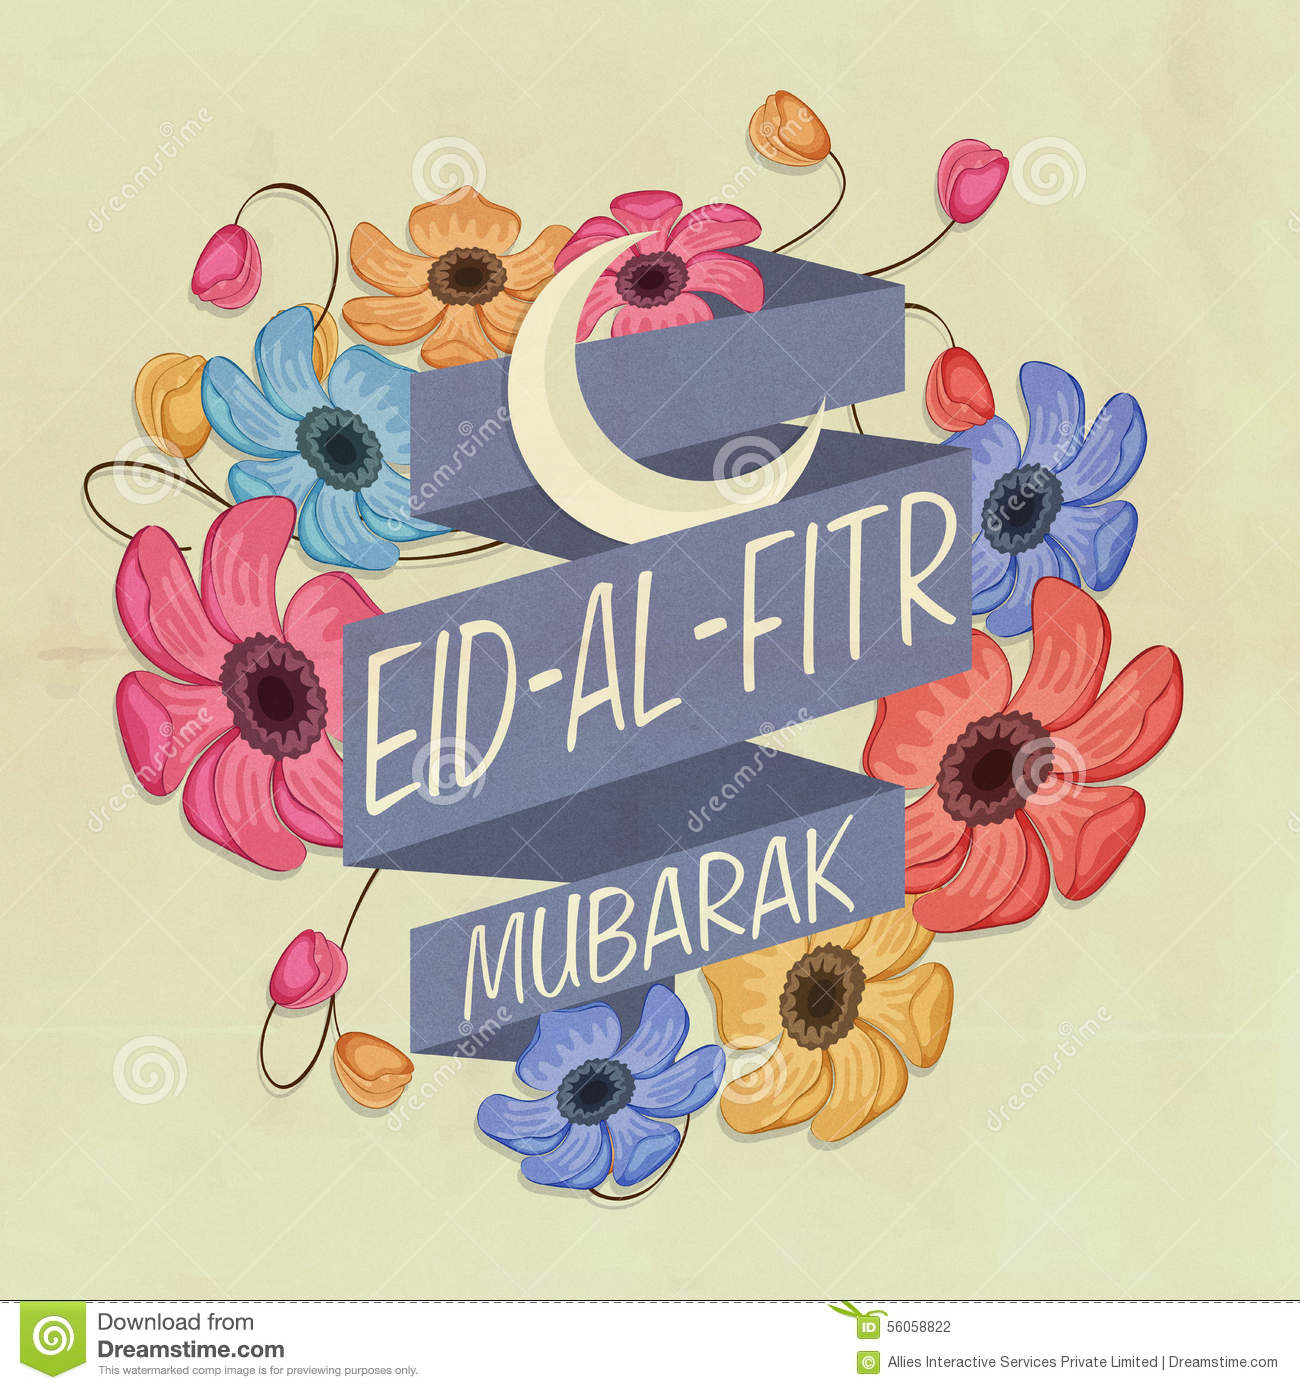 Best Moon Star Light Eid Al-Fitr Decorations - greeting-card-eid-al-fitr-festival-celebration-beautiful-flowers-decorated-ribbon-crescent-moon-stylish-text-islamic-56058822  Trends_903728 .jpg